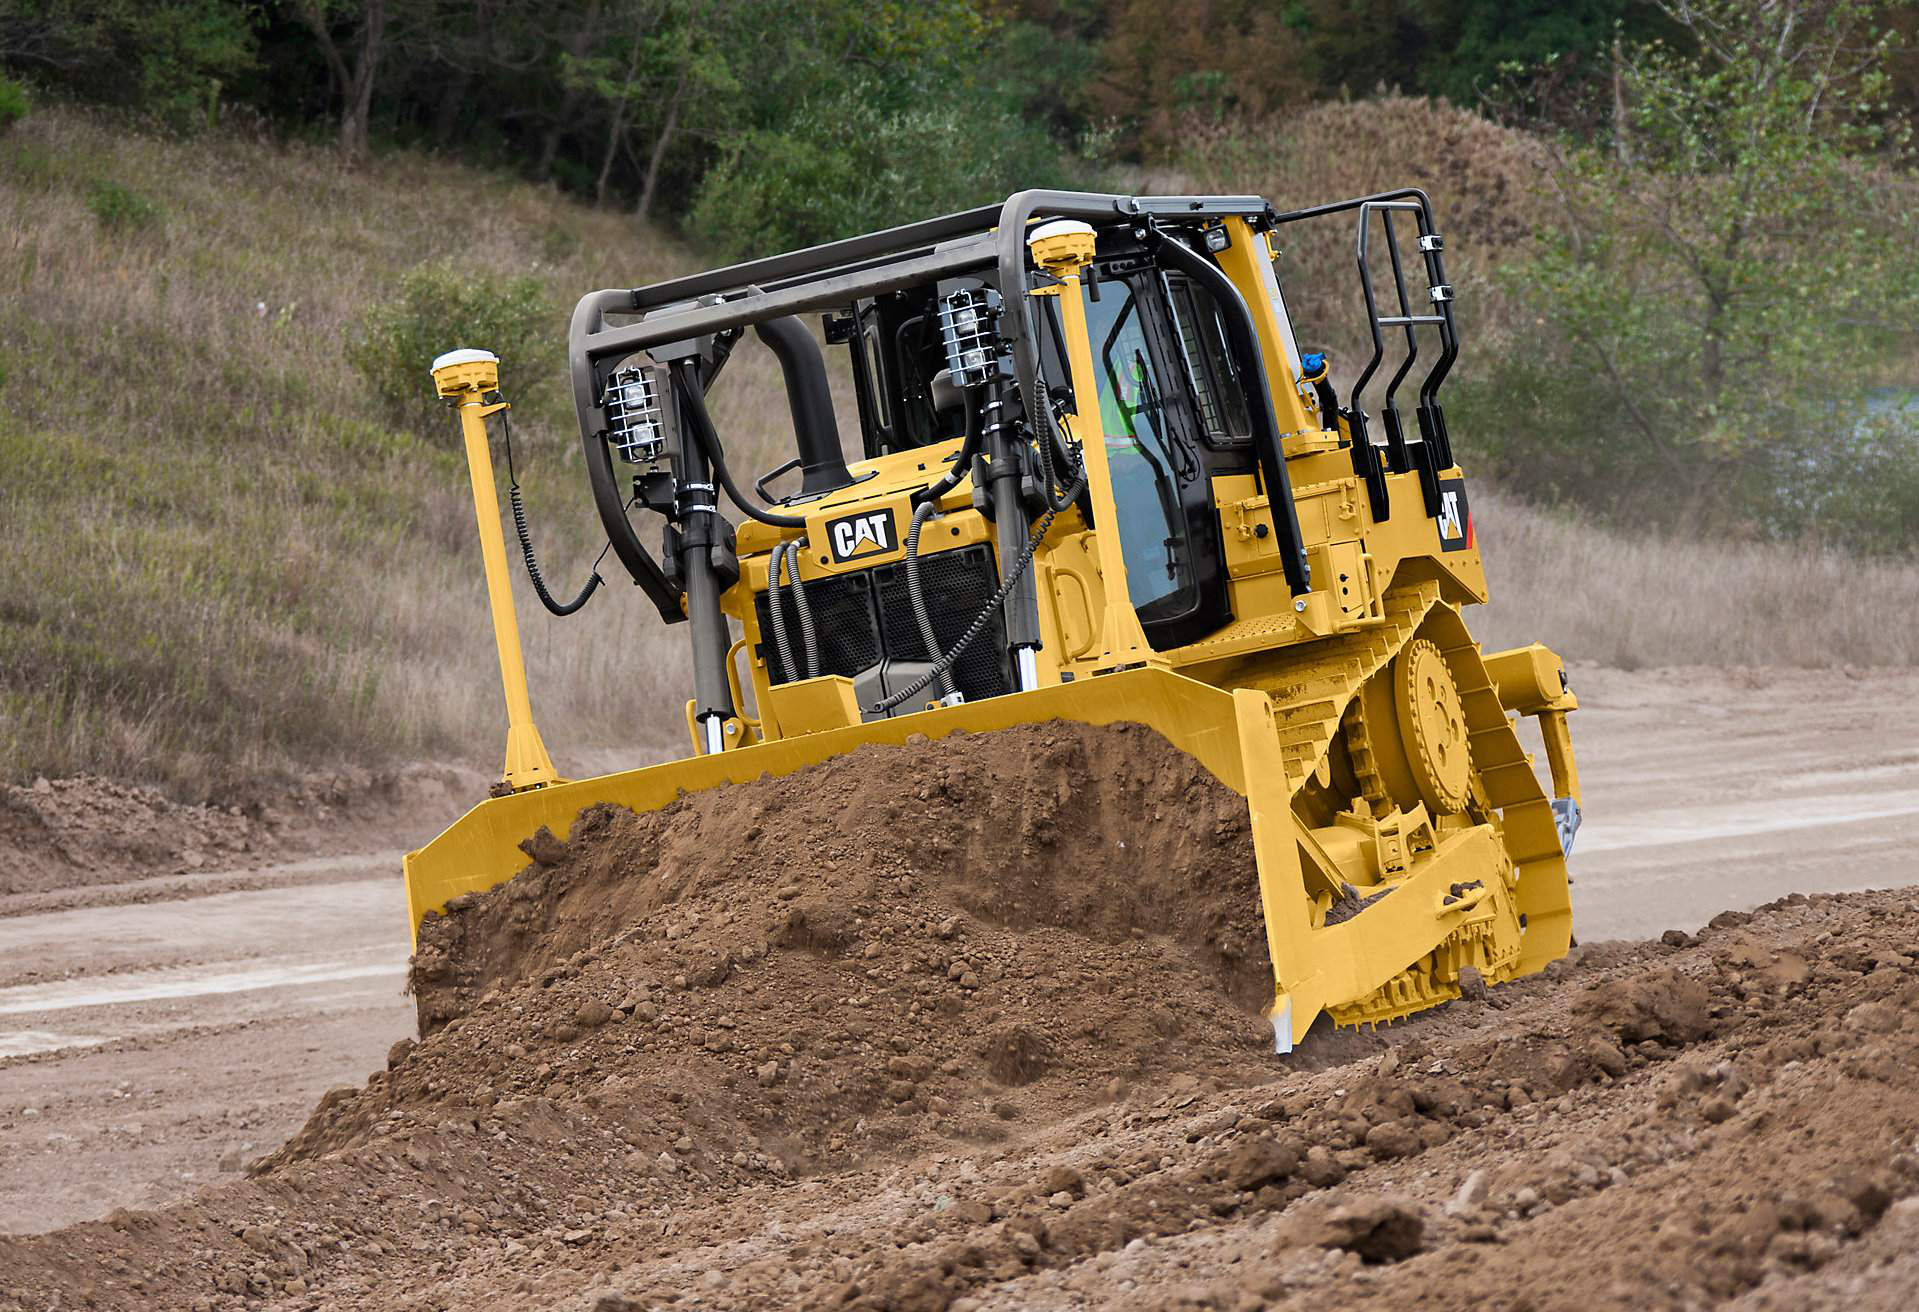 Cat Unveils D6t Dozer With Fully Auto Transmission Big Fuel Savings